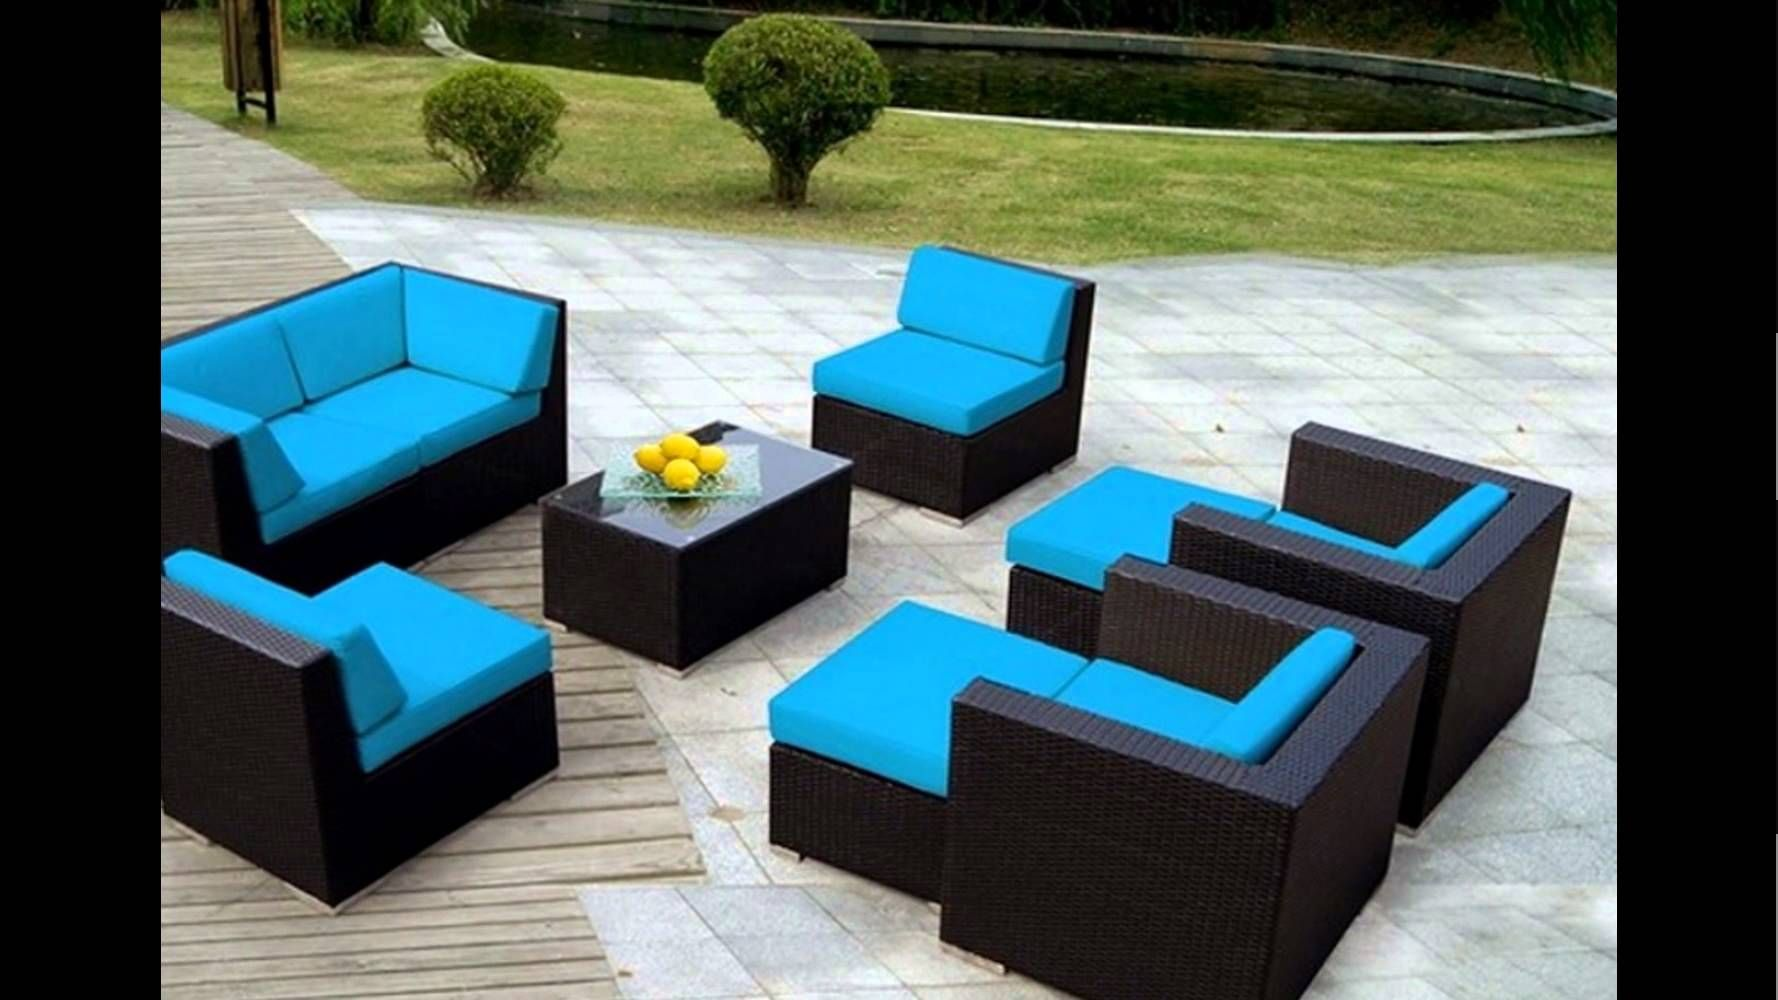 The Making Of The Big Lots Patio Furniture Decorifusta In 2020 Patio Furniture Layout Big Lots Patio Furniture Diy Patio Furniture